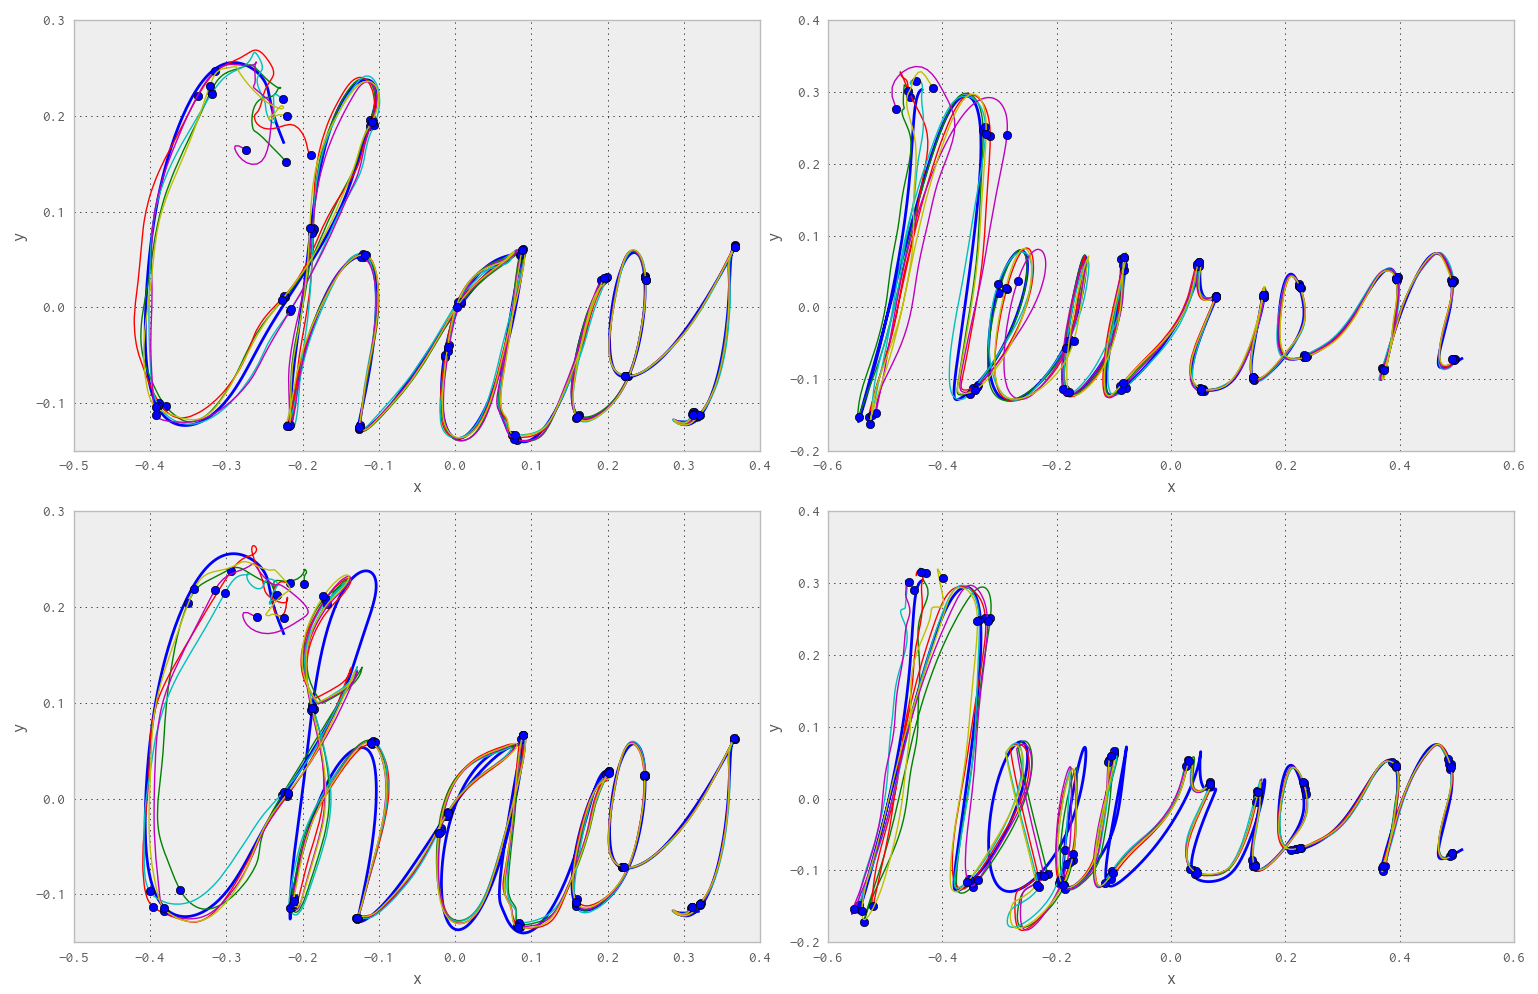 Generation and stability of complex spatiotemporal motor patterns. Left and right: two different trajectories in the read-out space learned by the same network. Top: without perturbation. Bottom: with perturbation. Each figure is the superposition of 5 different test trials, showing the robustness of the trajectories to initial conditions and perturbations. Equidistant time points are represented as blue circles.